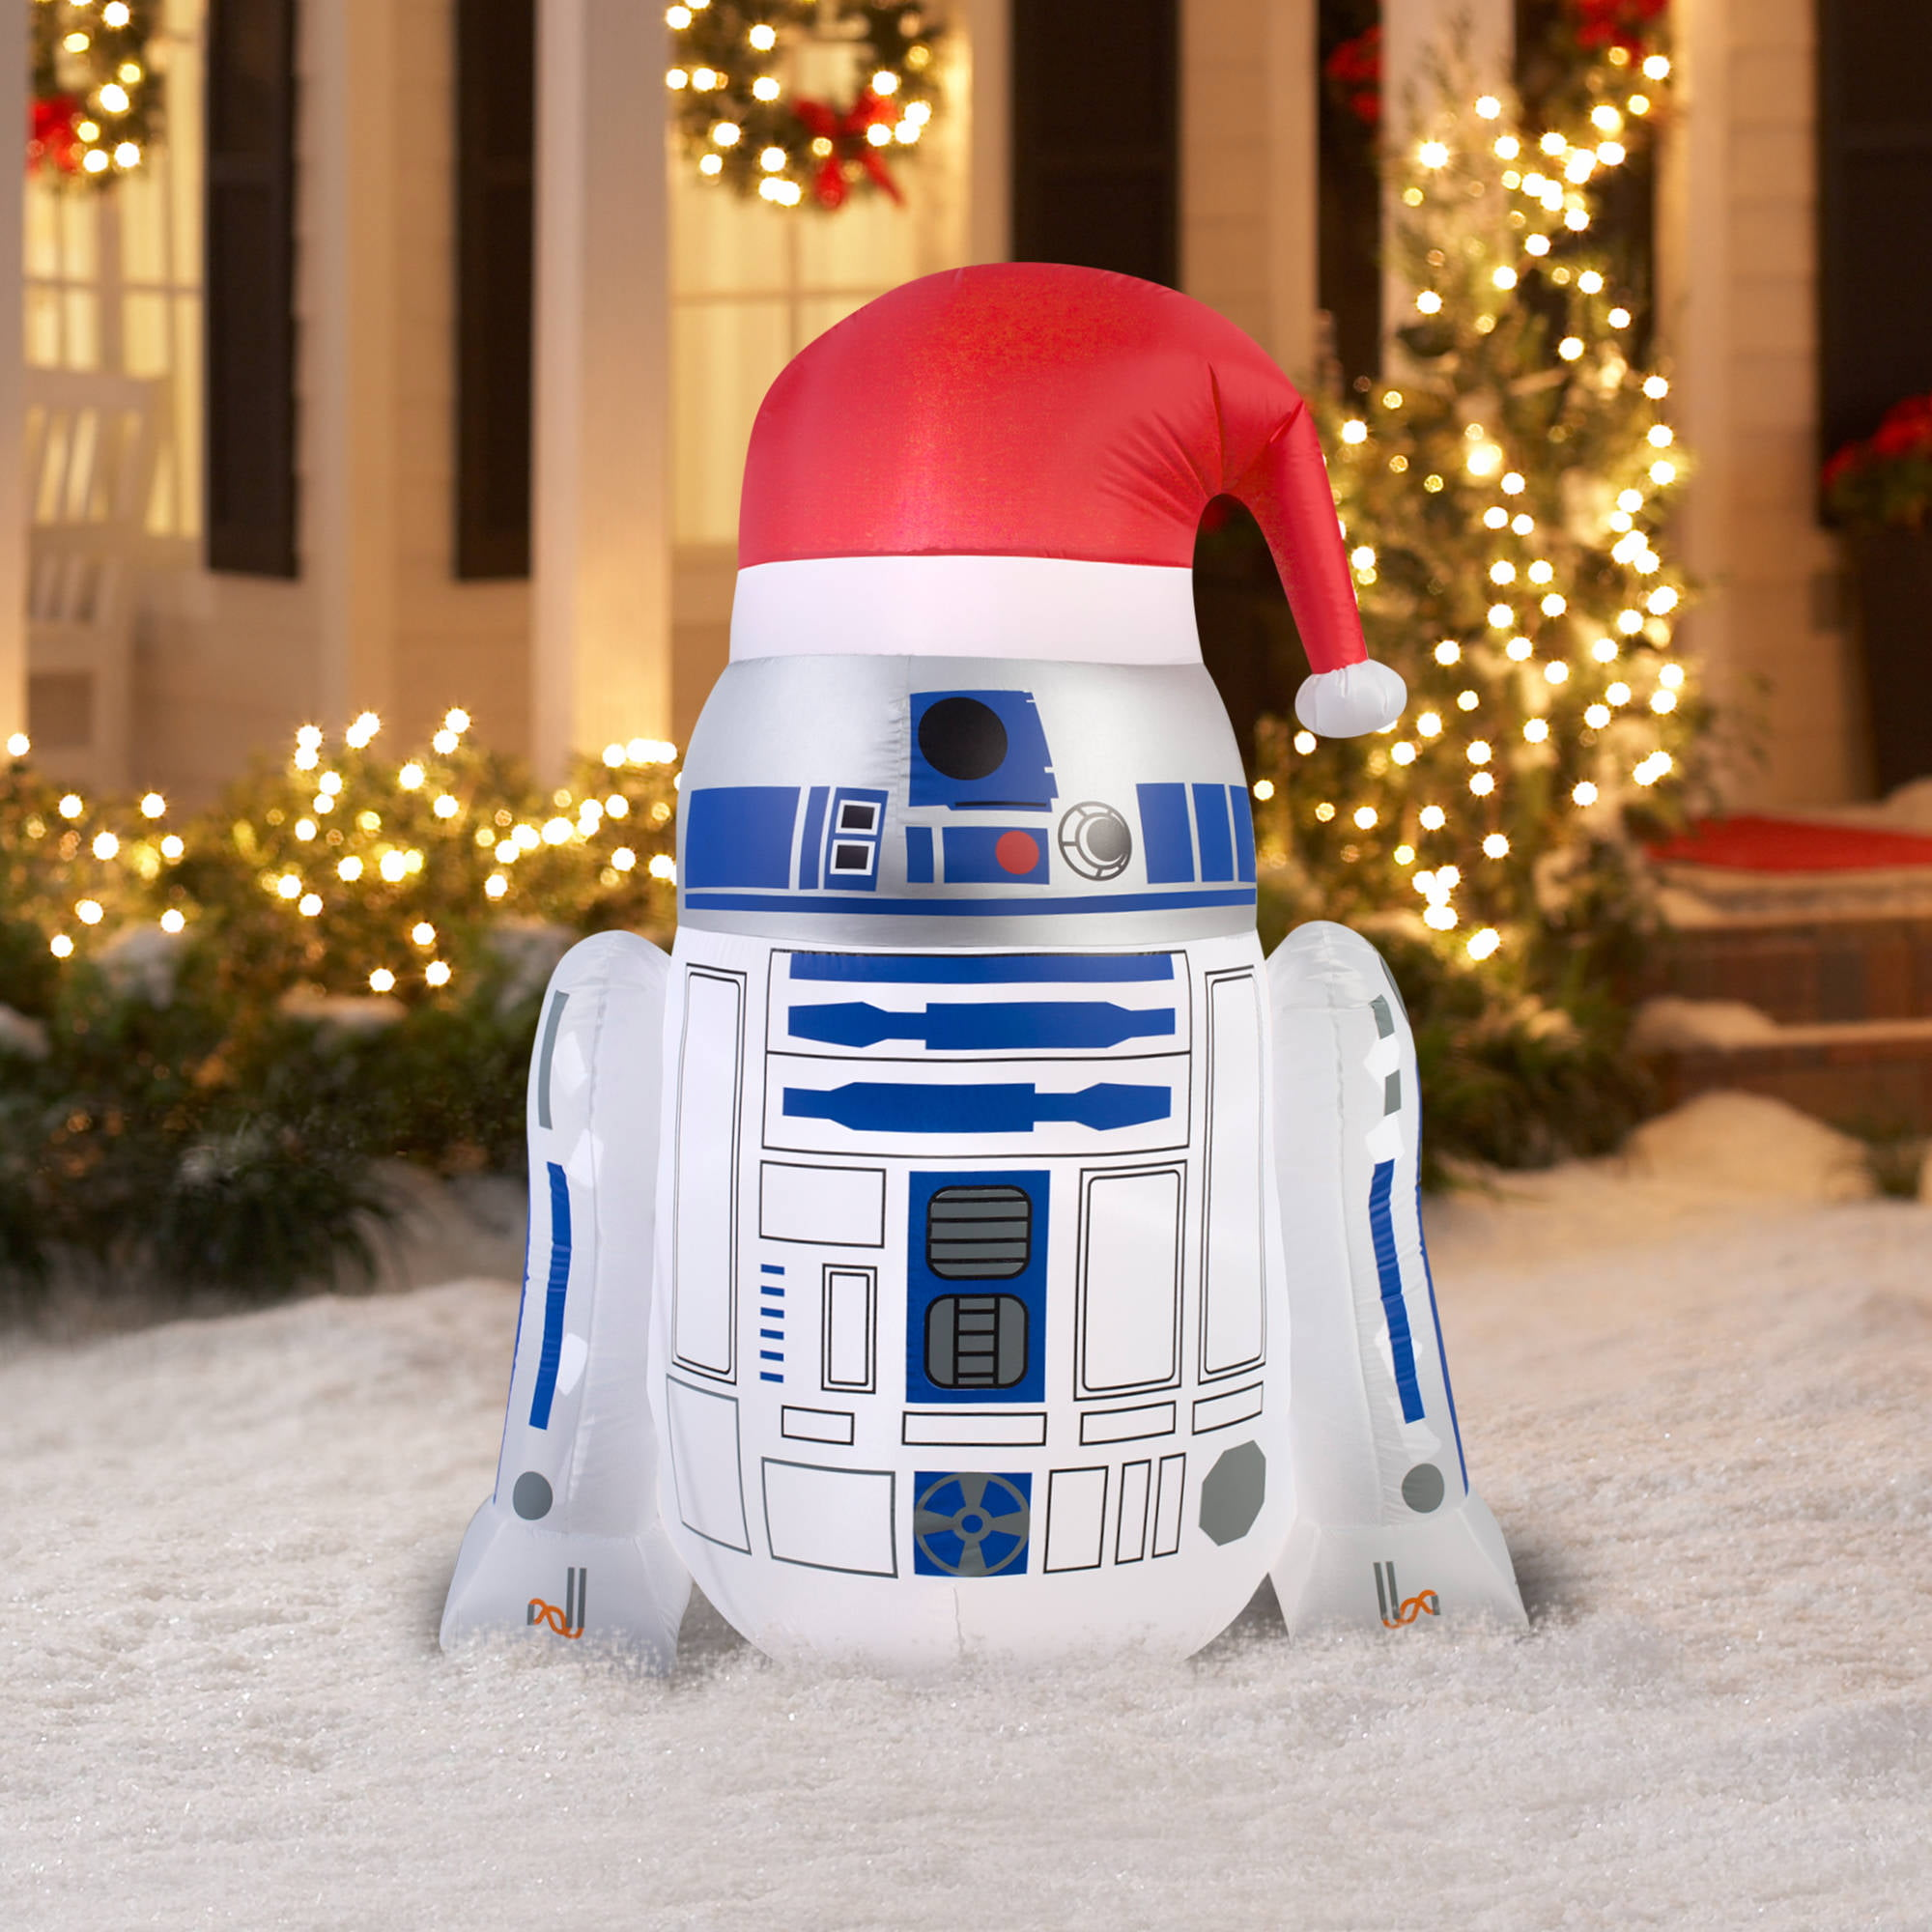 46 airblown inflatable r2d2 with santa hat star wars christmas inflatable walmartcom - Star Wars Blow Up Christmas Decorations